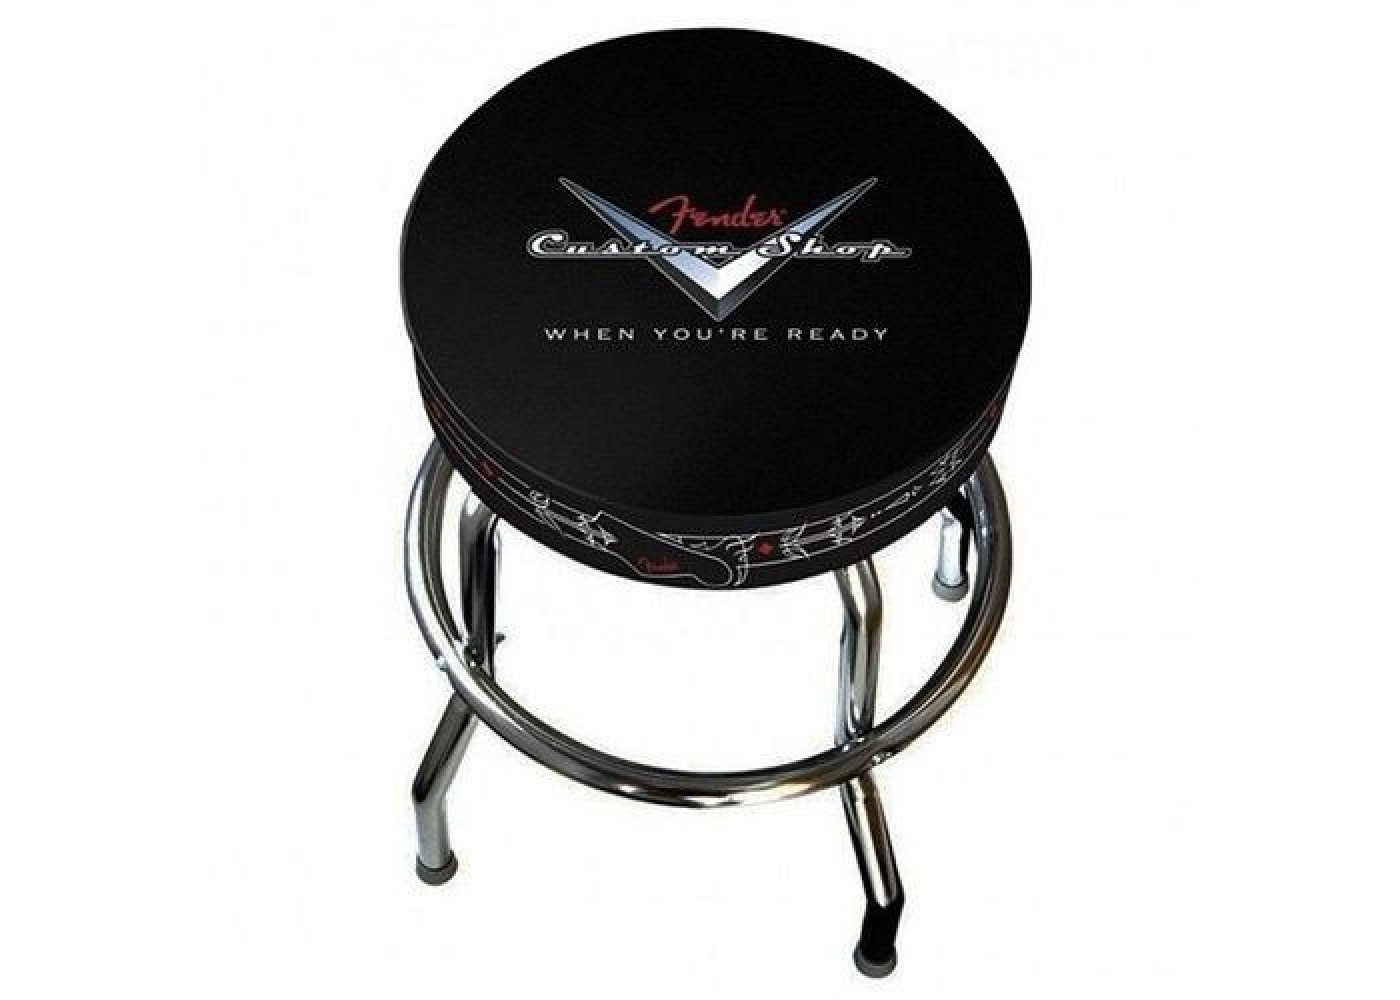 Groovy Fender Guitars Custom Shop Black 24 Inch Barstool W Padded Seat 0990230020 New Camellatalisay Diy Chair Ideas Camellatalisaycom